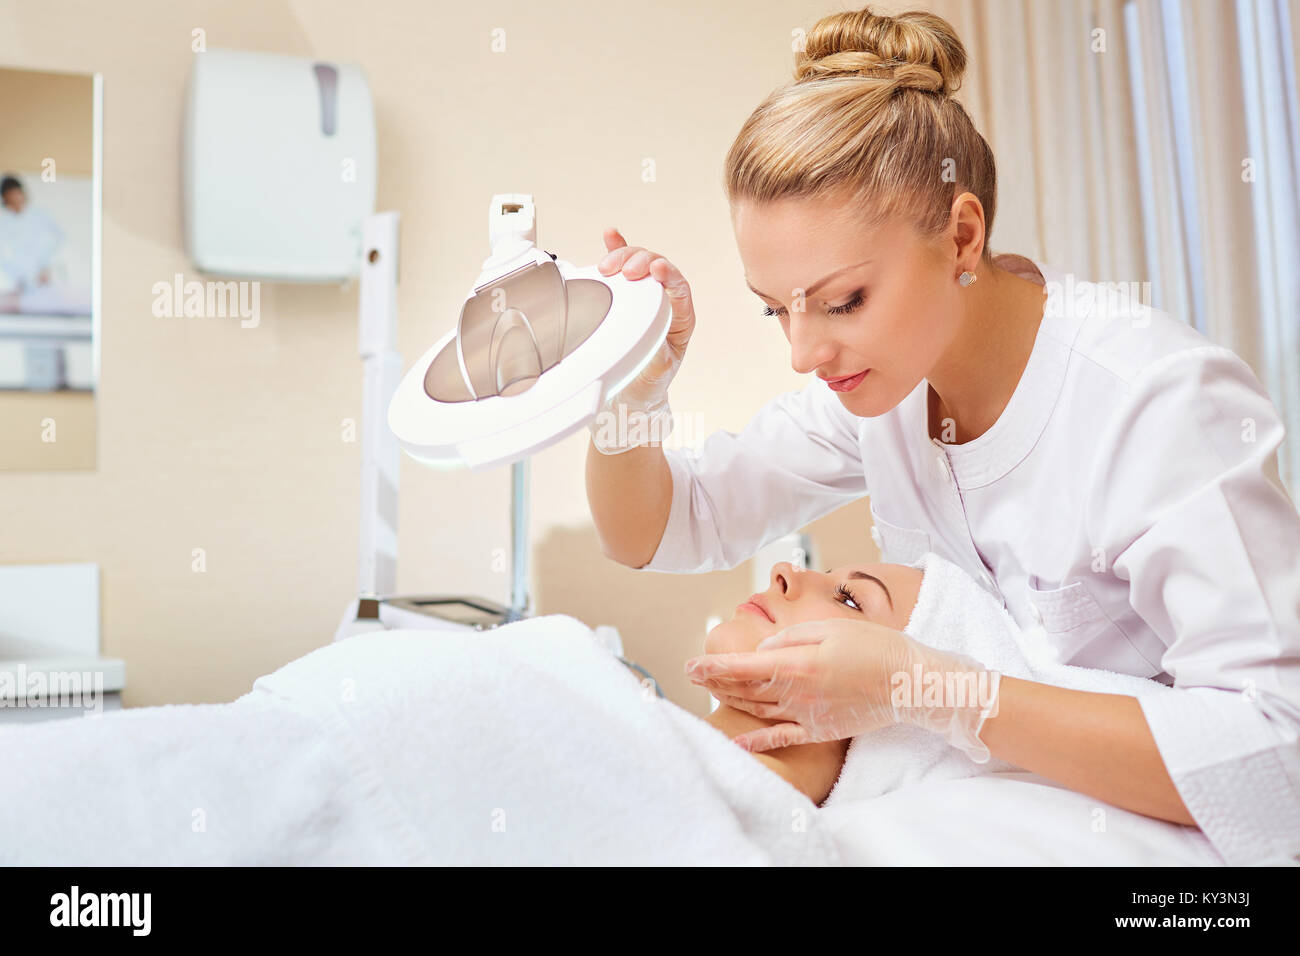 Cosmetologist is a professional with a patient in the office of - Stock Image